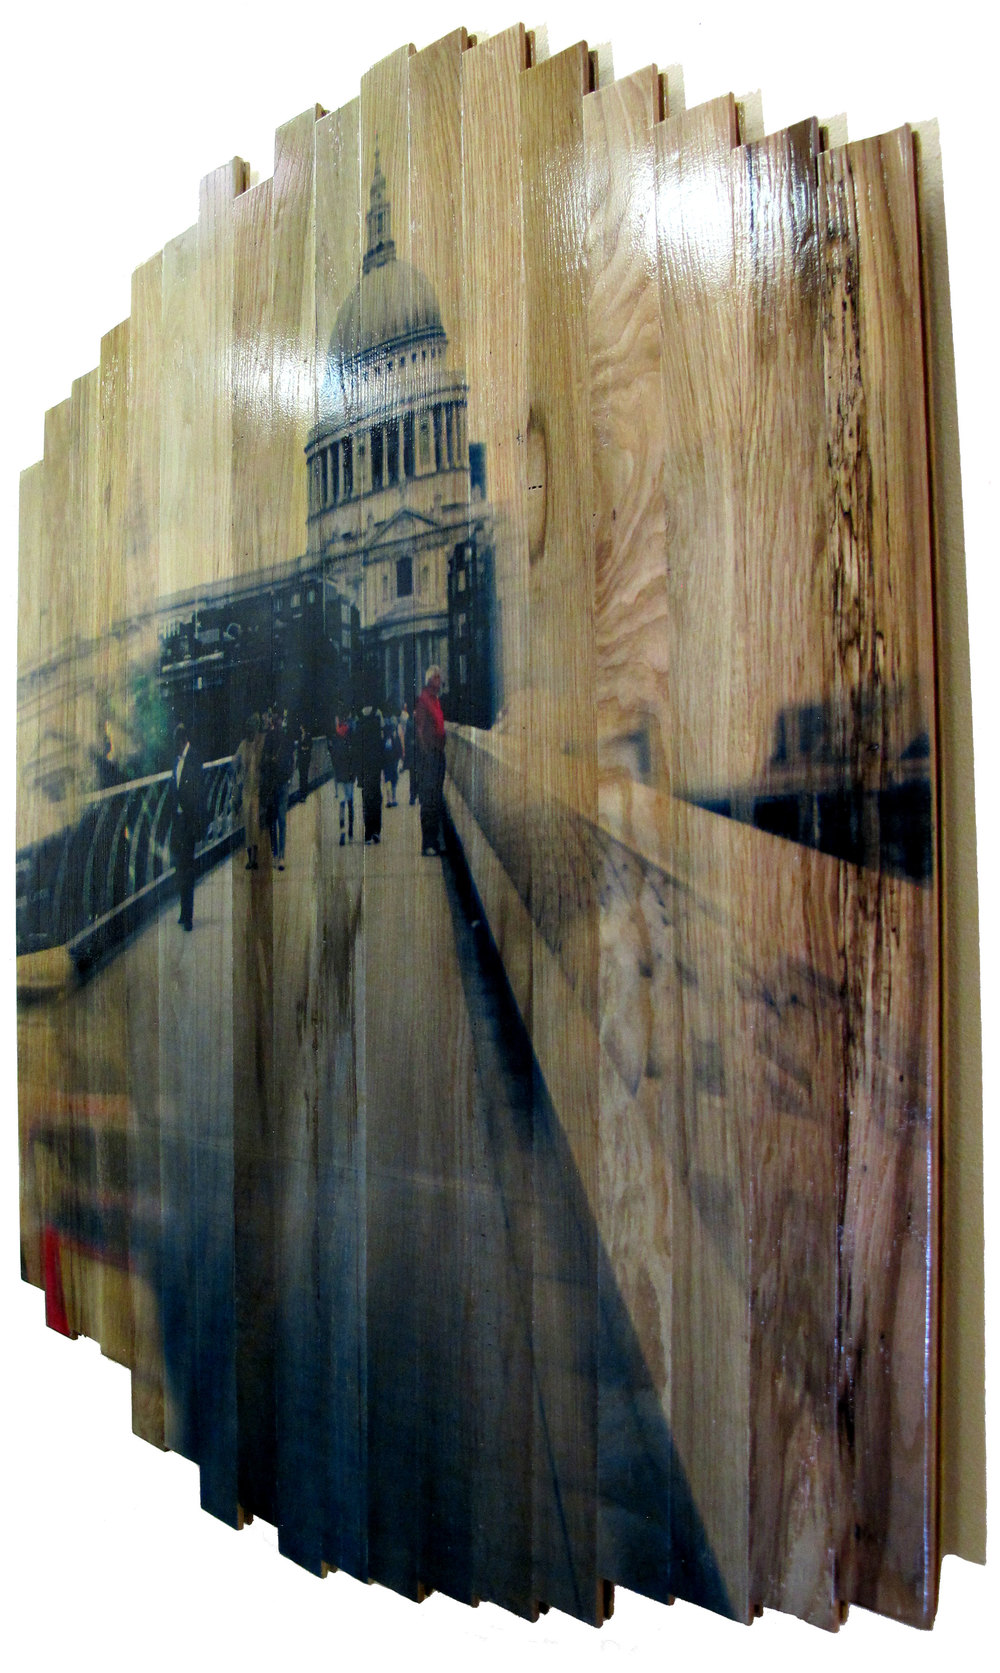 St. Paul's View,  2016 c print on reclaimed wood floor 48 x 41 x 1.5 in / 122 x 105 x 4 cm  Unique